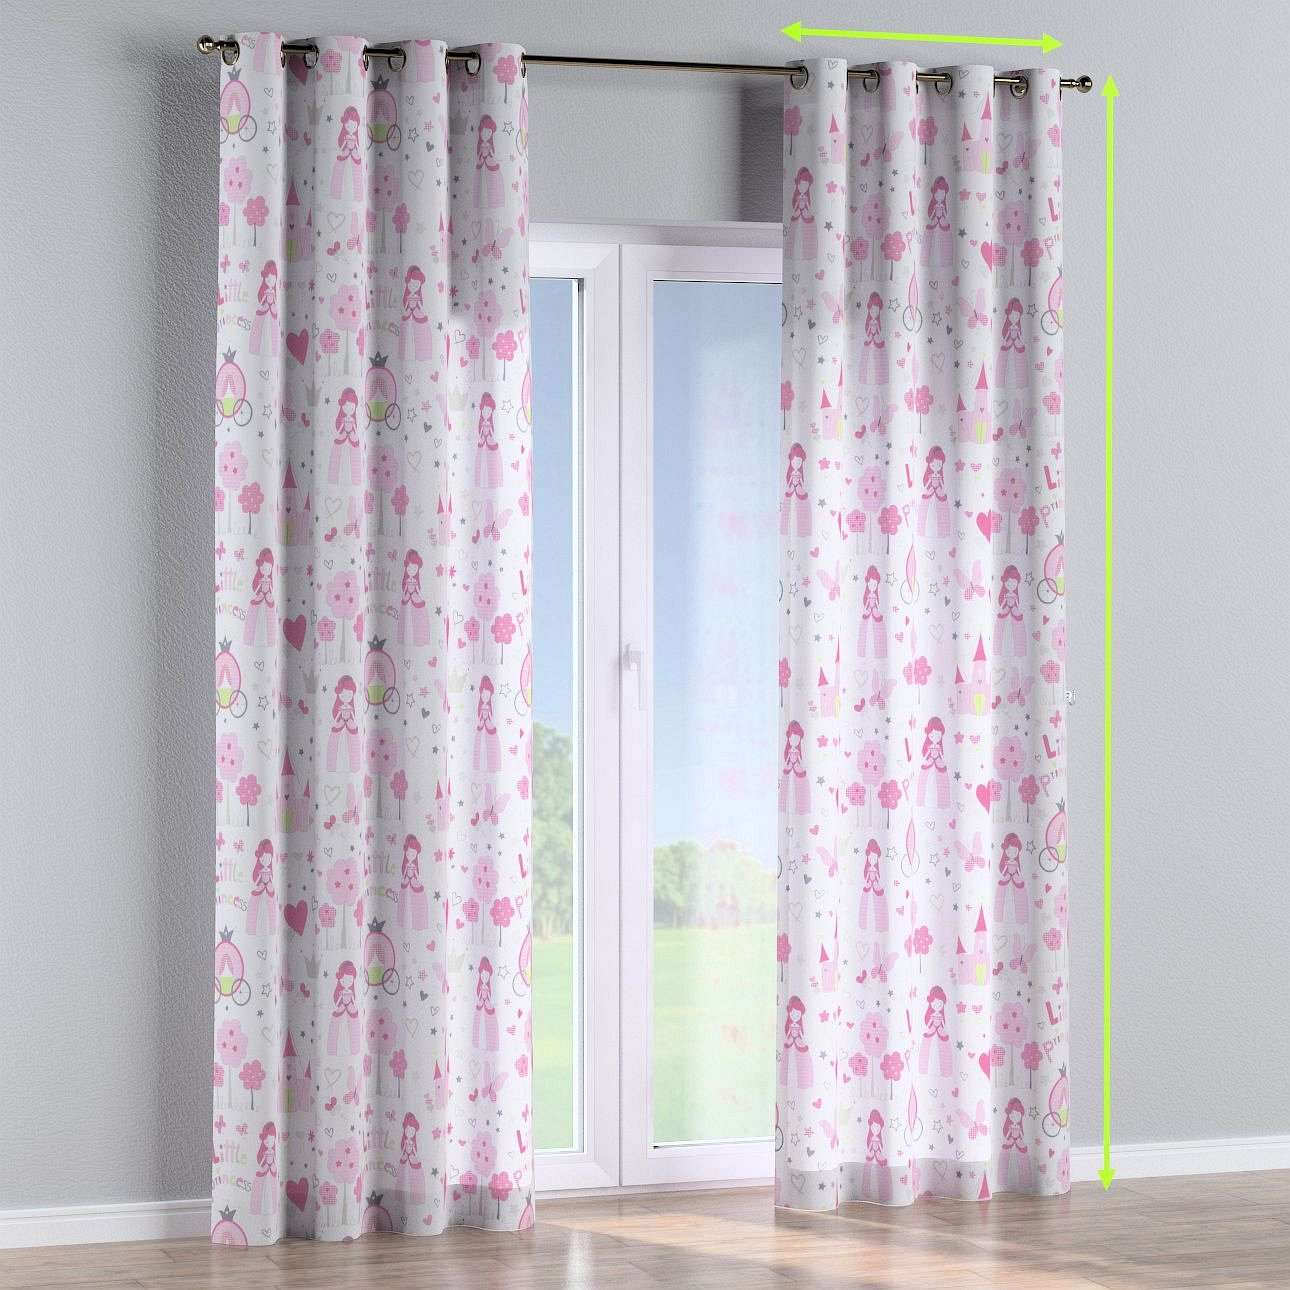 Eyelet curtains in collection Little World, fabric: 141-28